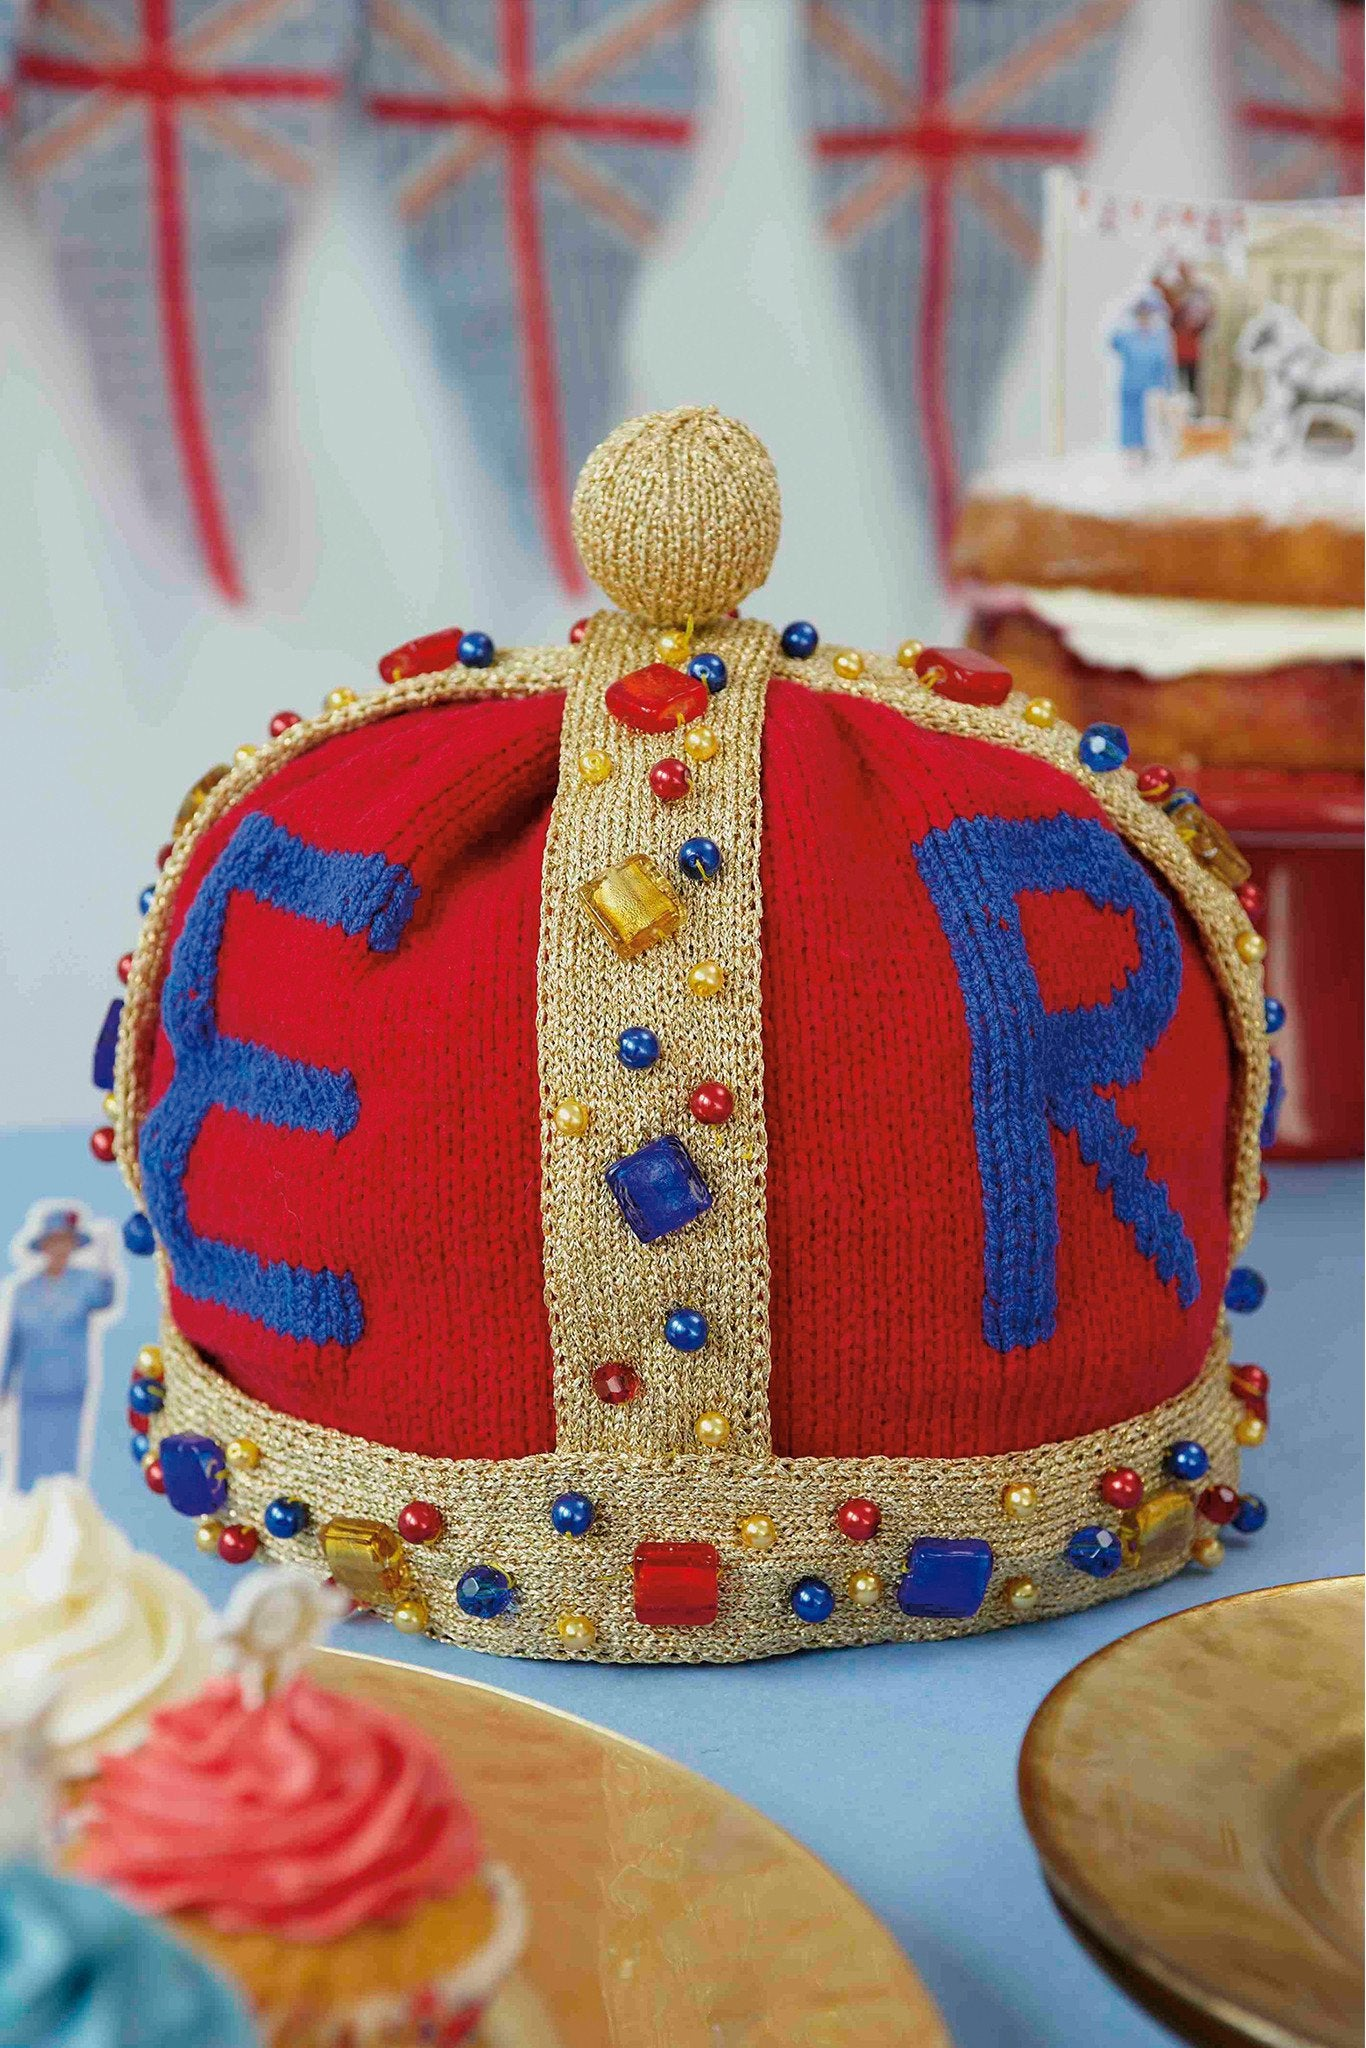 Royal Crown Tea Cosy Knitting Pattern – The Knitting Network